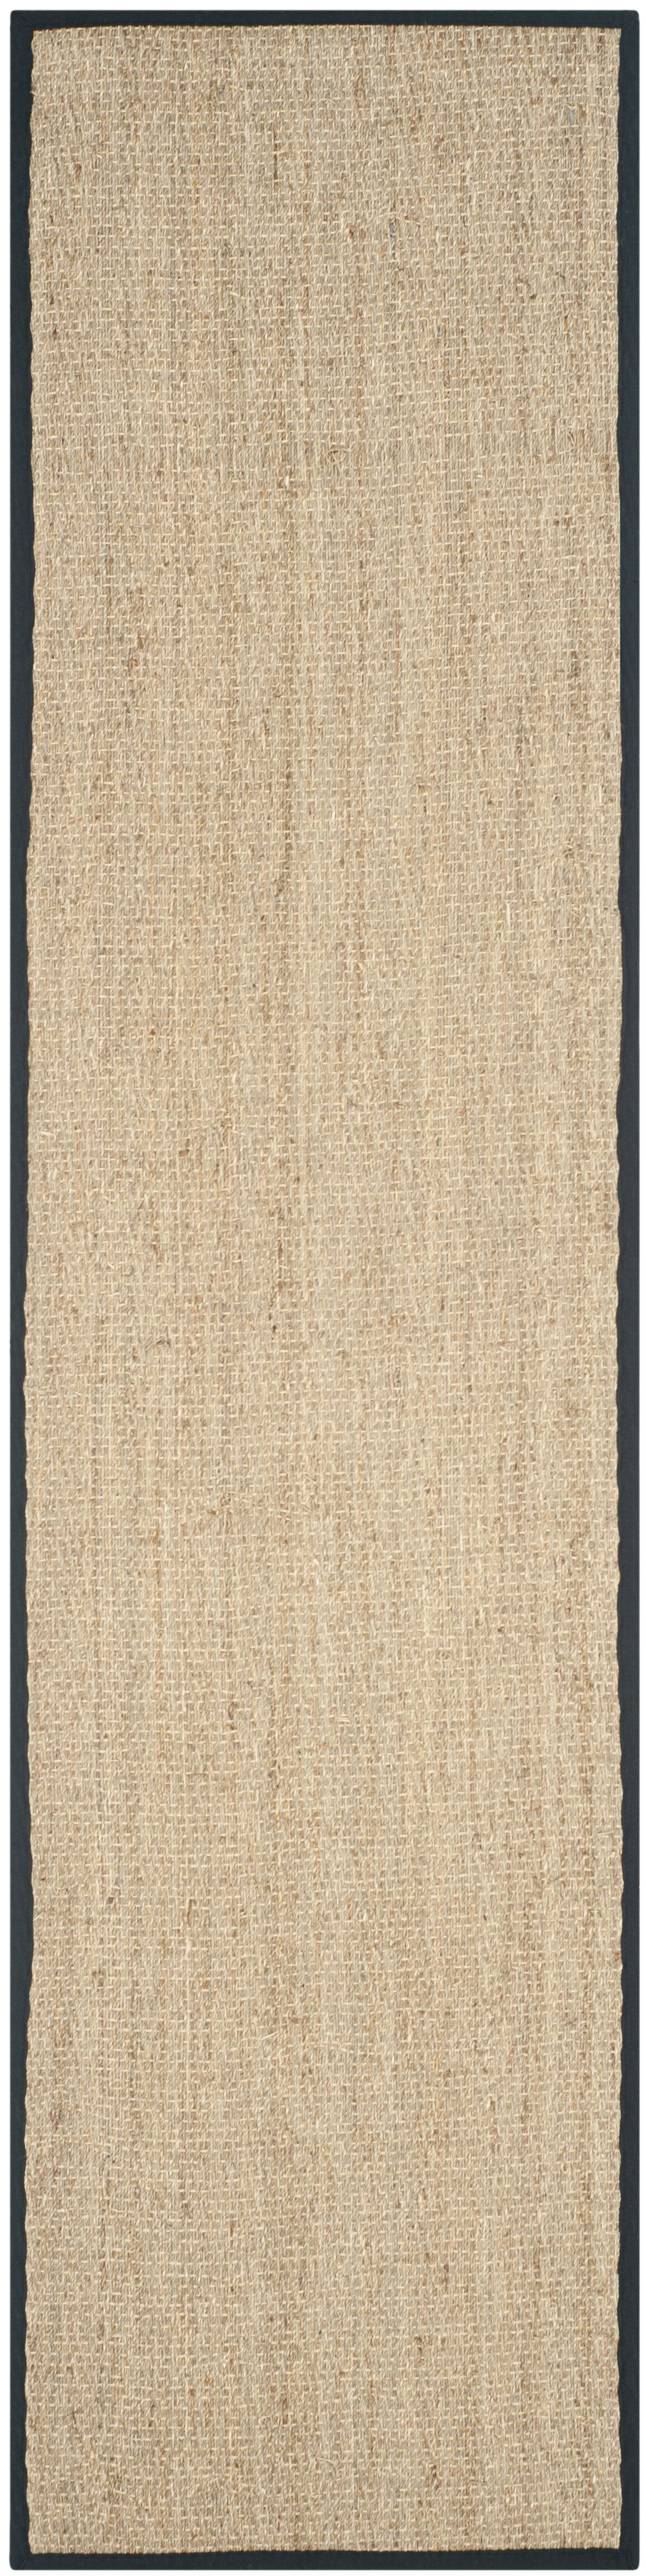 Staub Hand-Woven Natural/Black Area Rug Rug Size: Runner 2'6